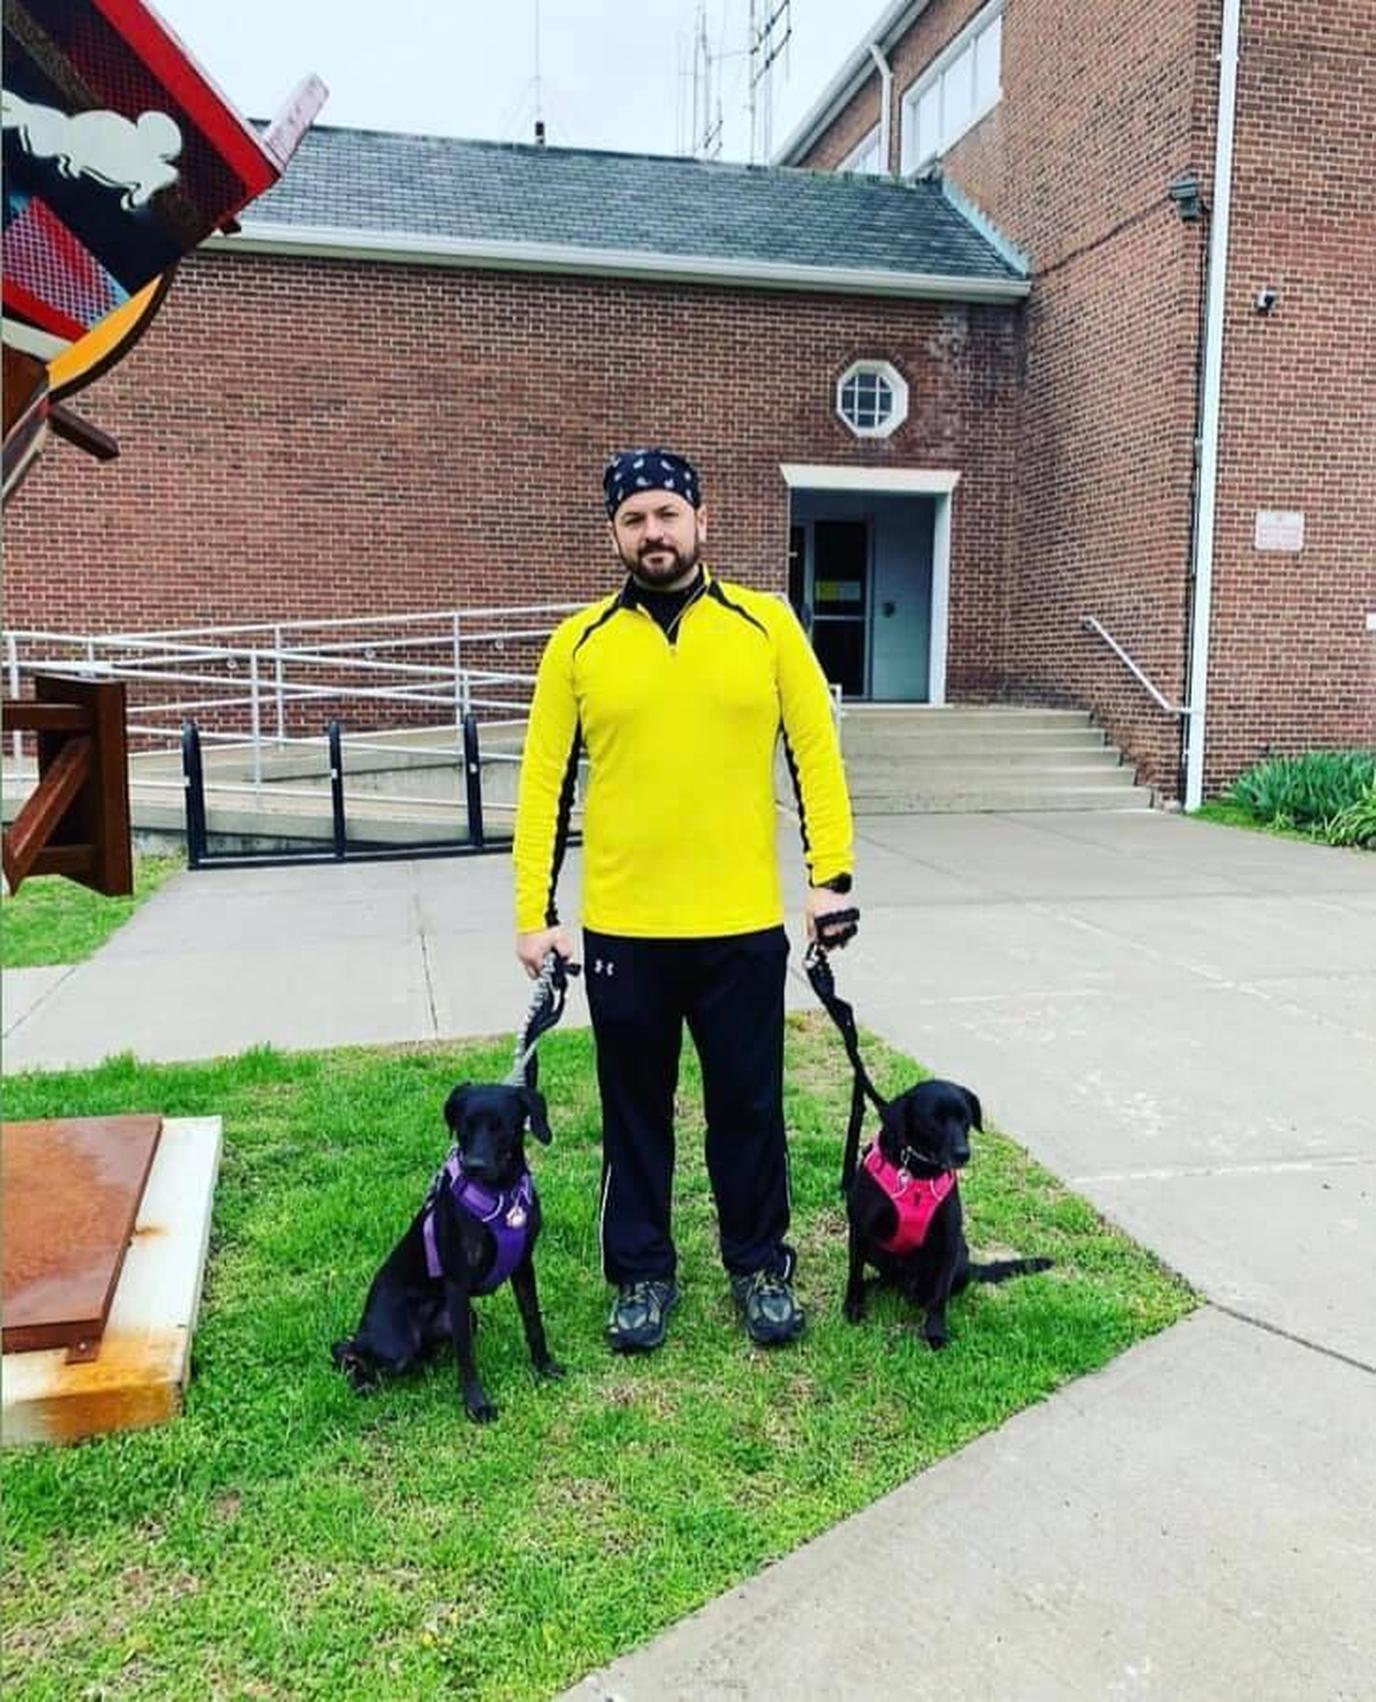 A Man Poses With Two Dogs Before Going on a Pet-Friendly Spring Run in Bethel.